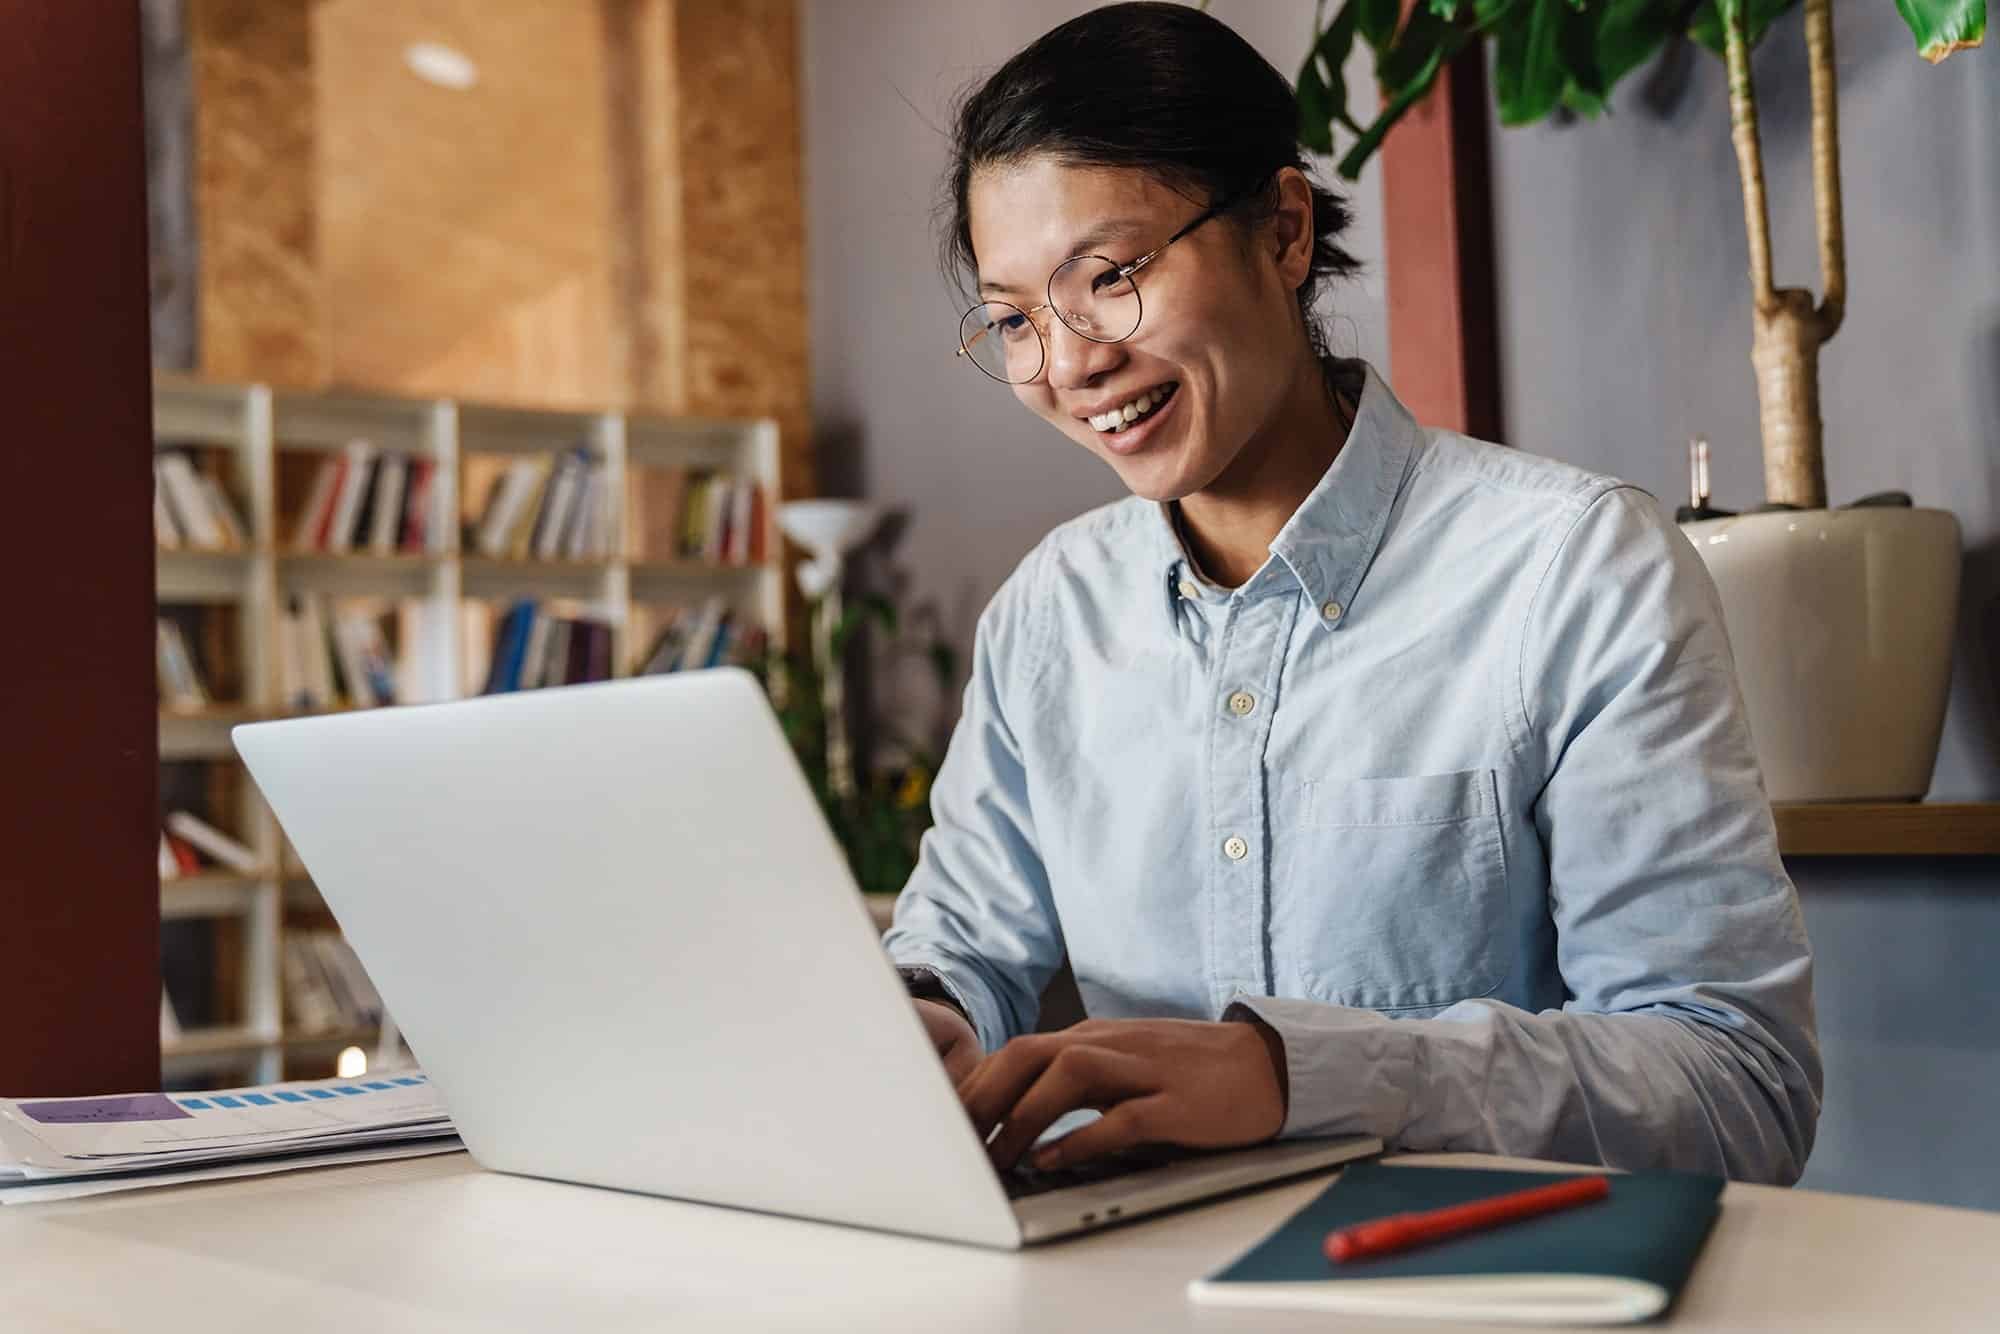 Woman smiling and working on laptop